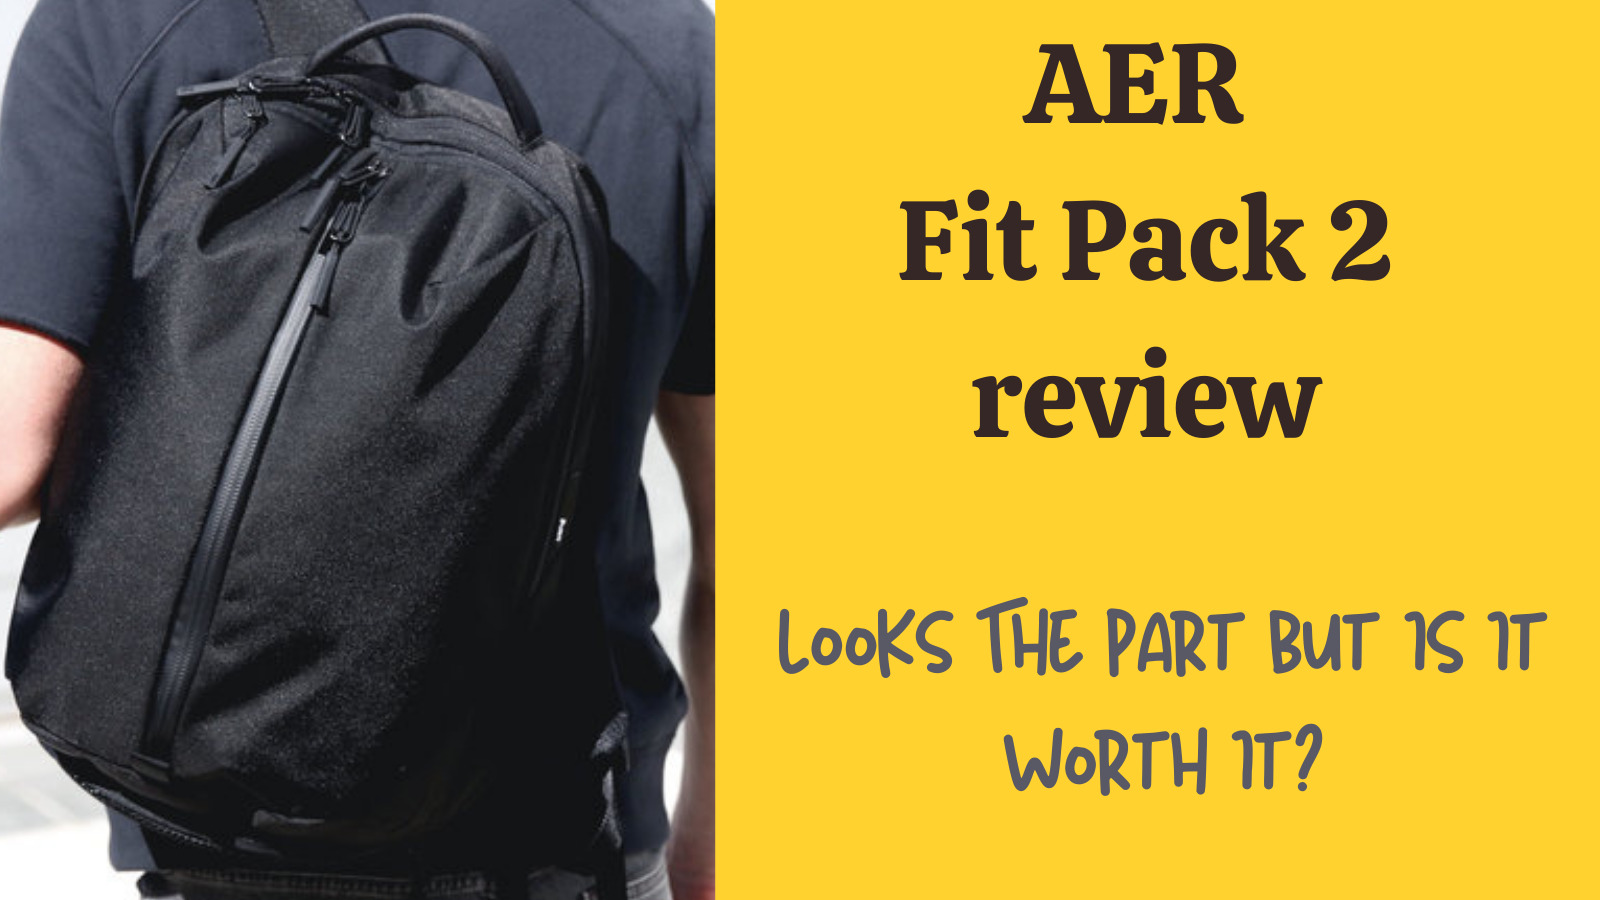 AER Fit Pack 2 Review: feature image